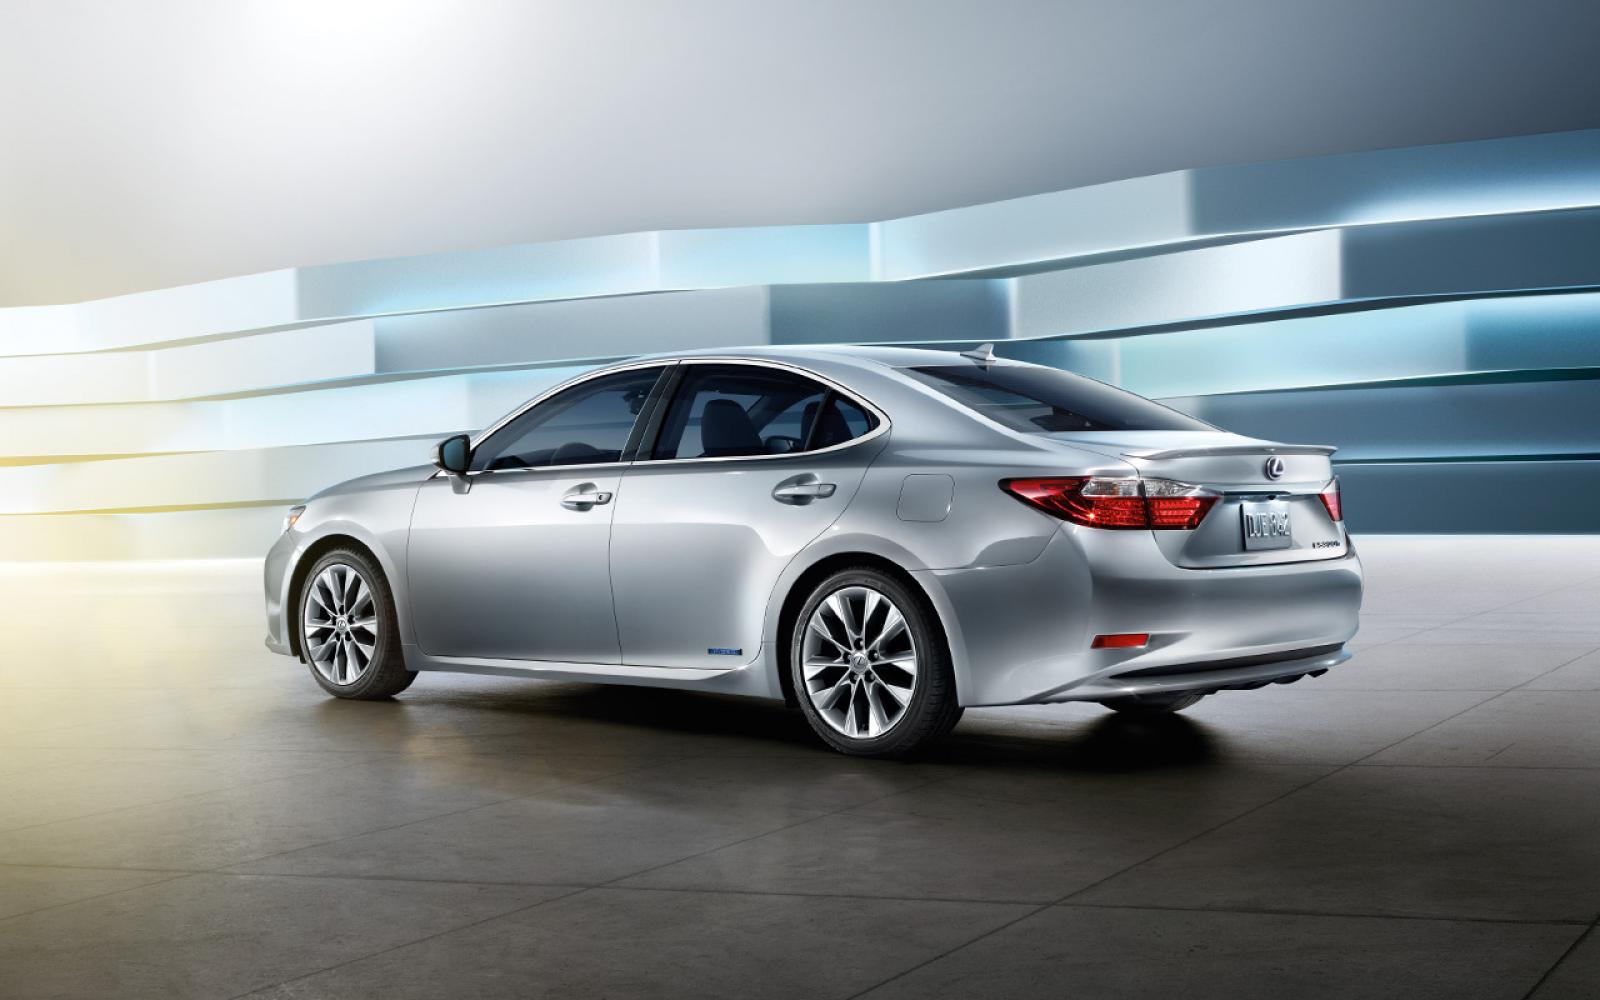 2014 lexus es 300h information and photos zombiedrive. Black Bedroom Furniture Sets. Home Design Ideas